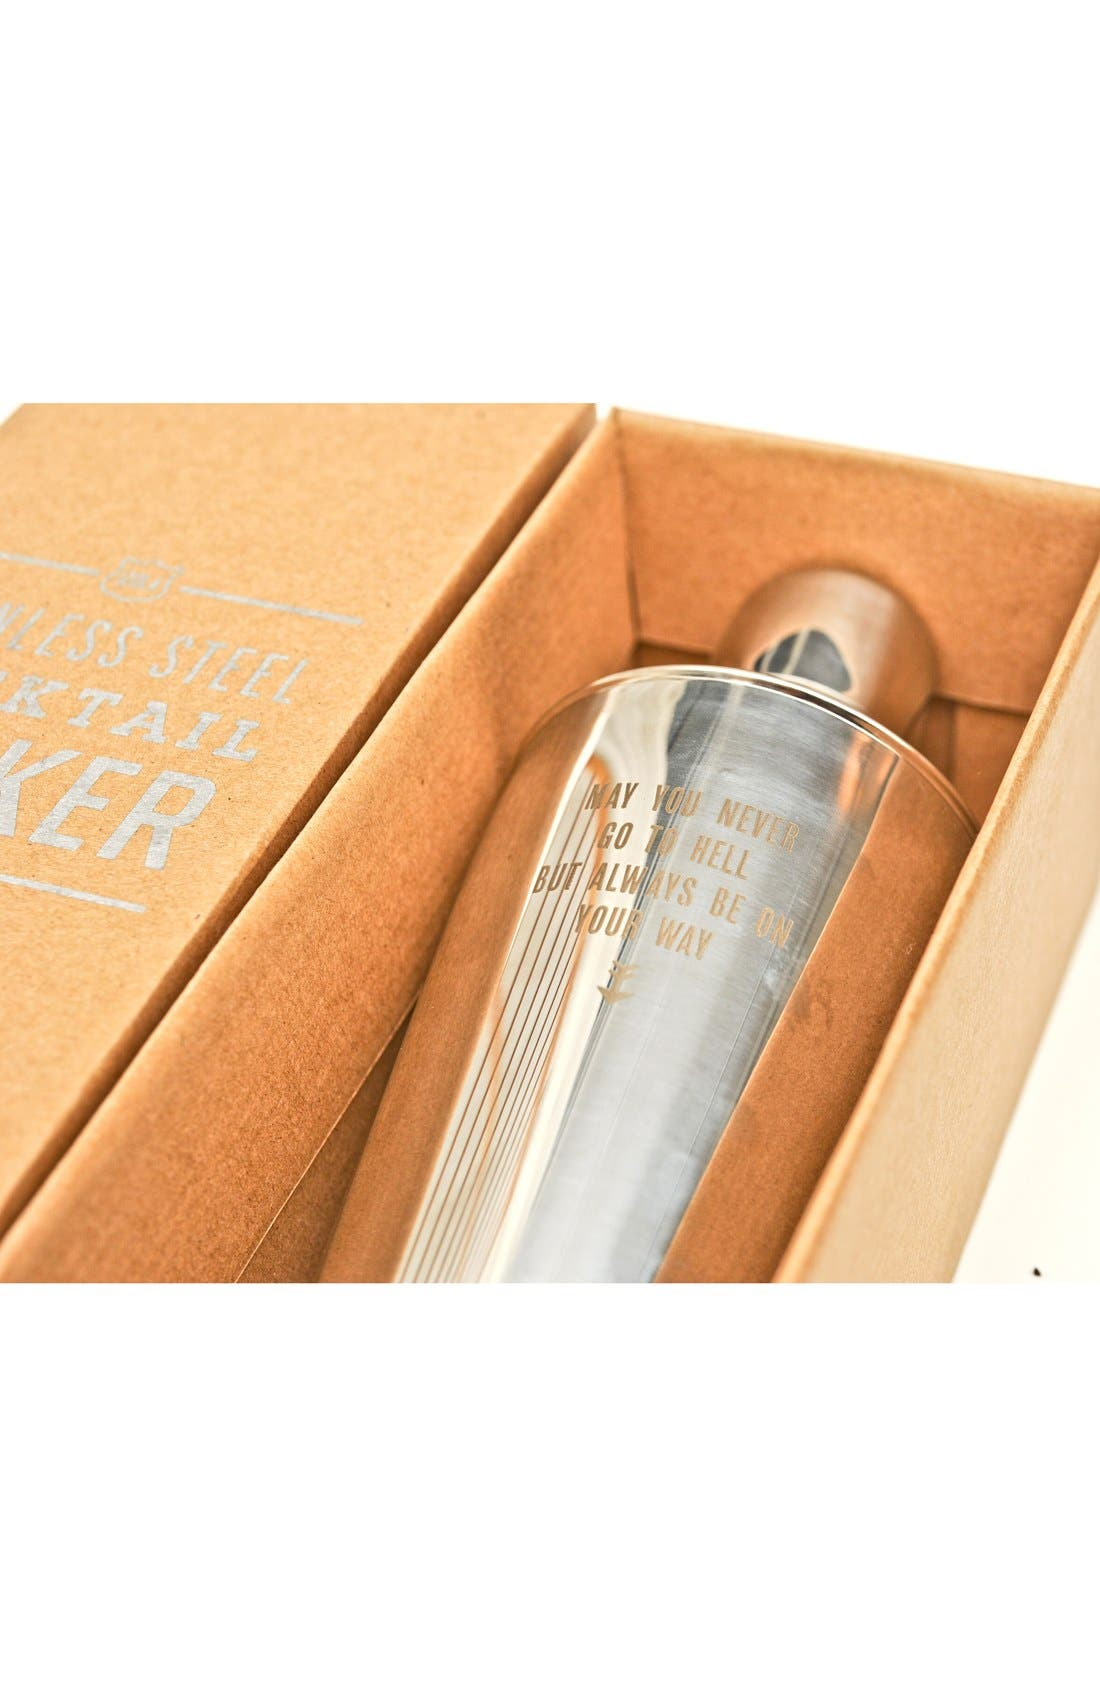 Alternate Image 2  - Izola 'May You Never' Stainless Steel Cocktail Shaker